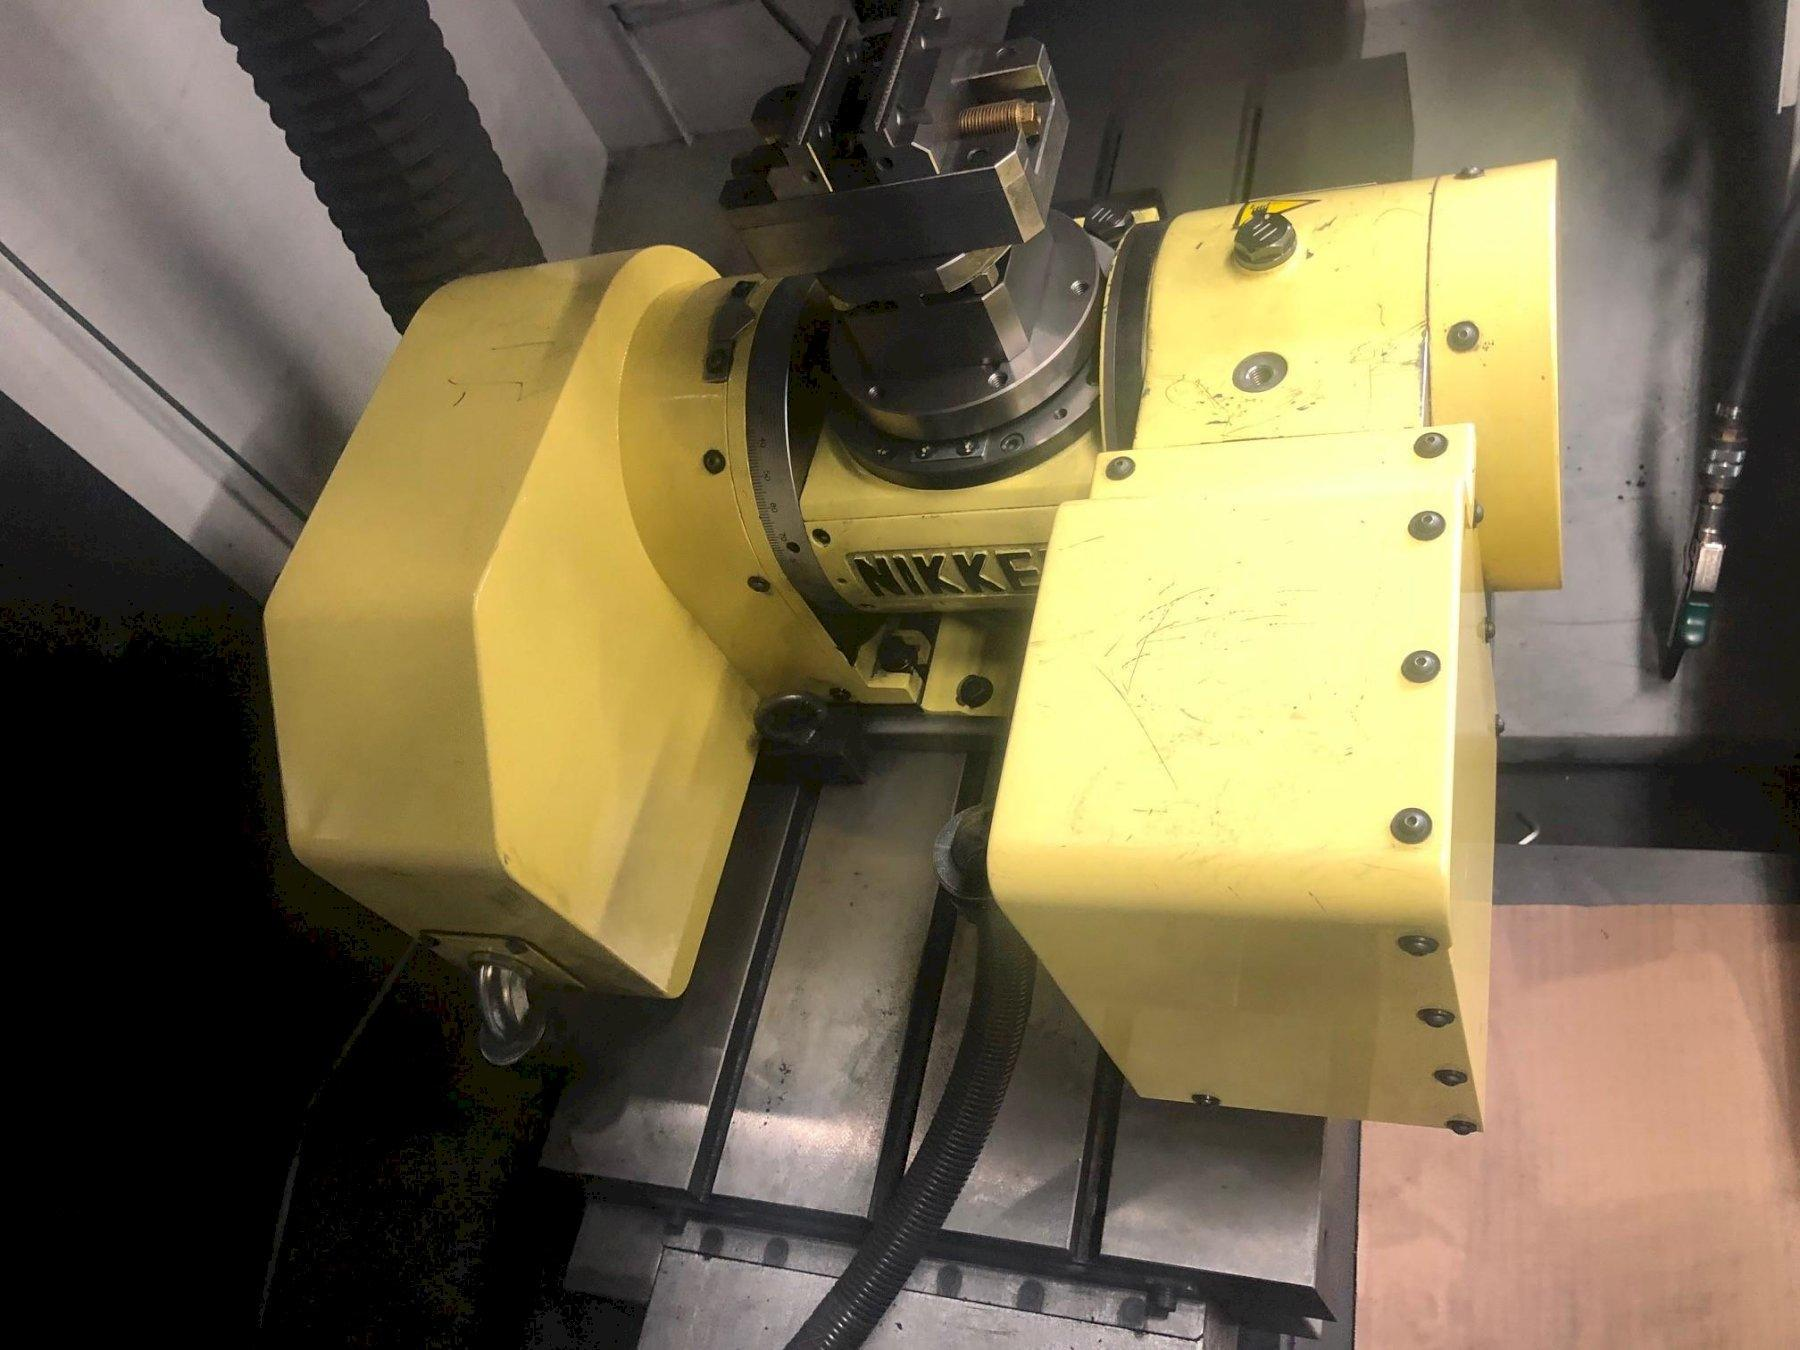 NIKKEN 5AX-130 5-Axis Rotary Table